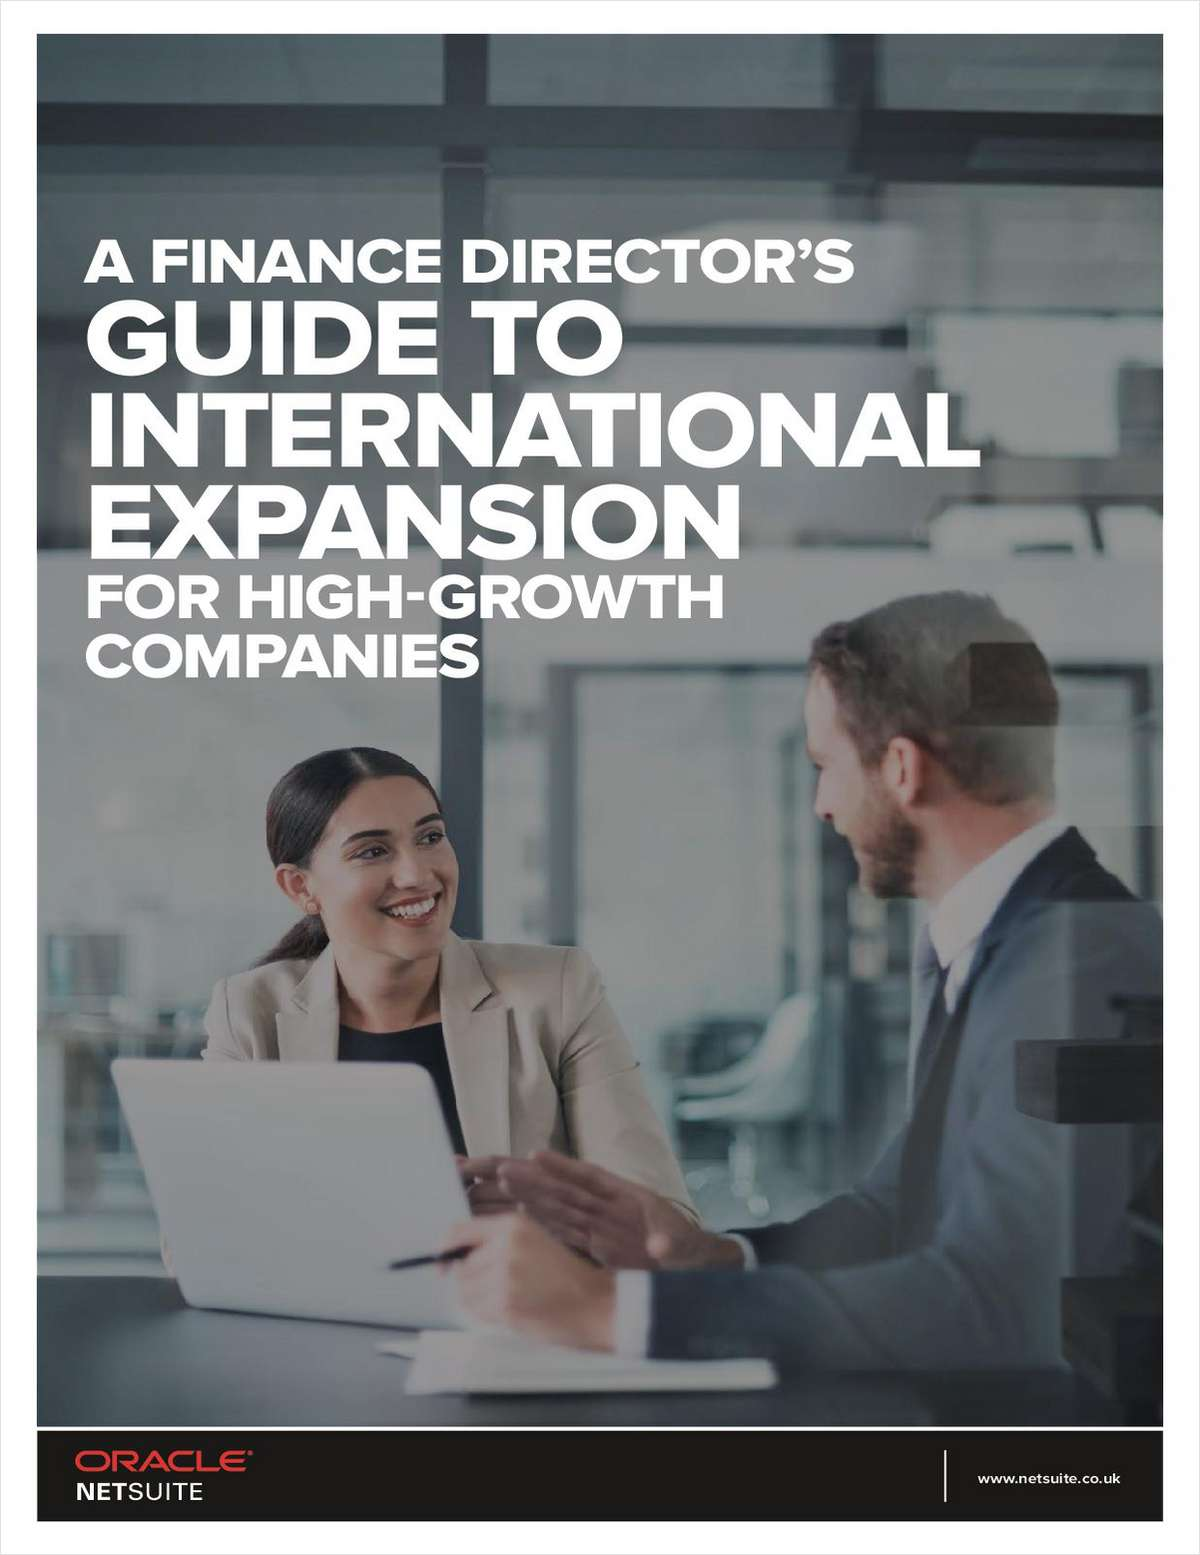 Guide to International Expansion for High-Growth Companies